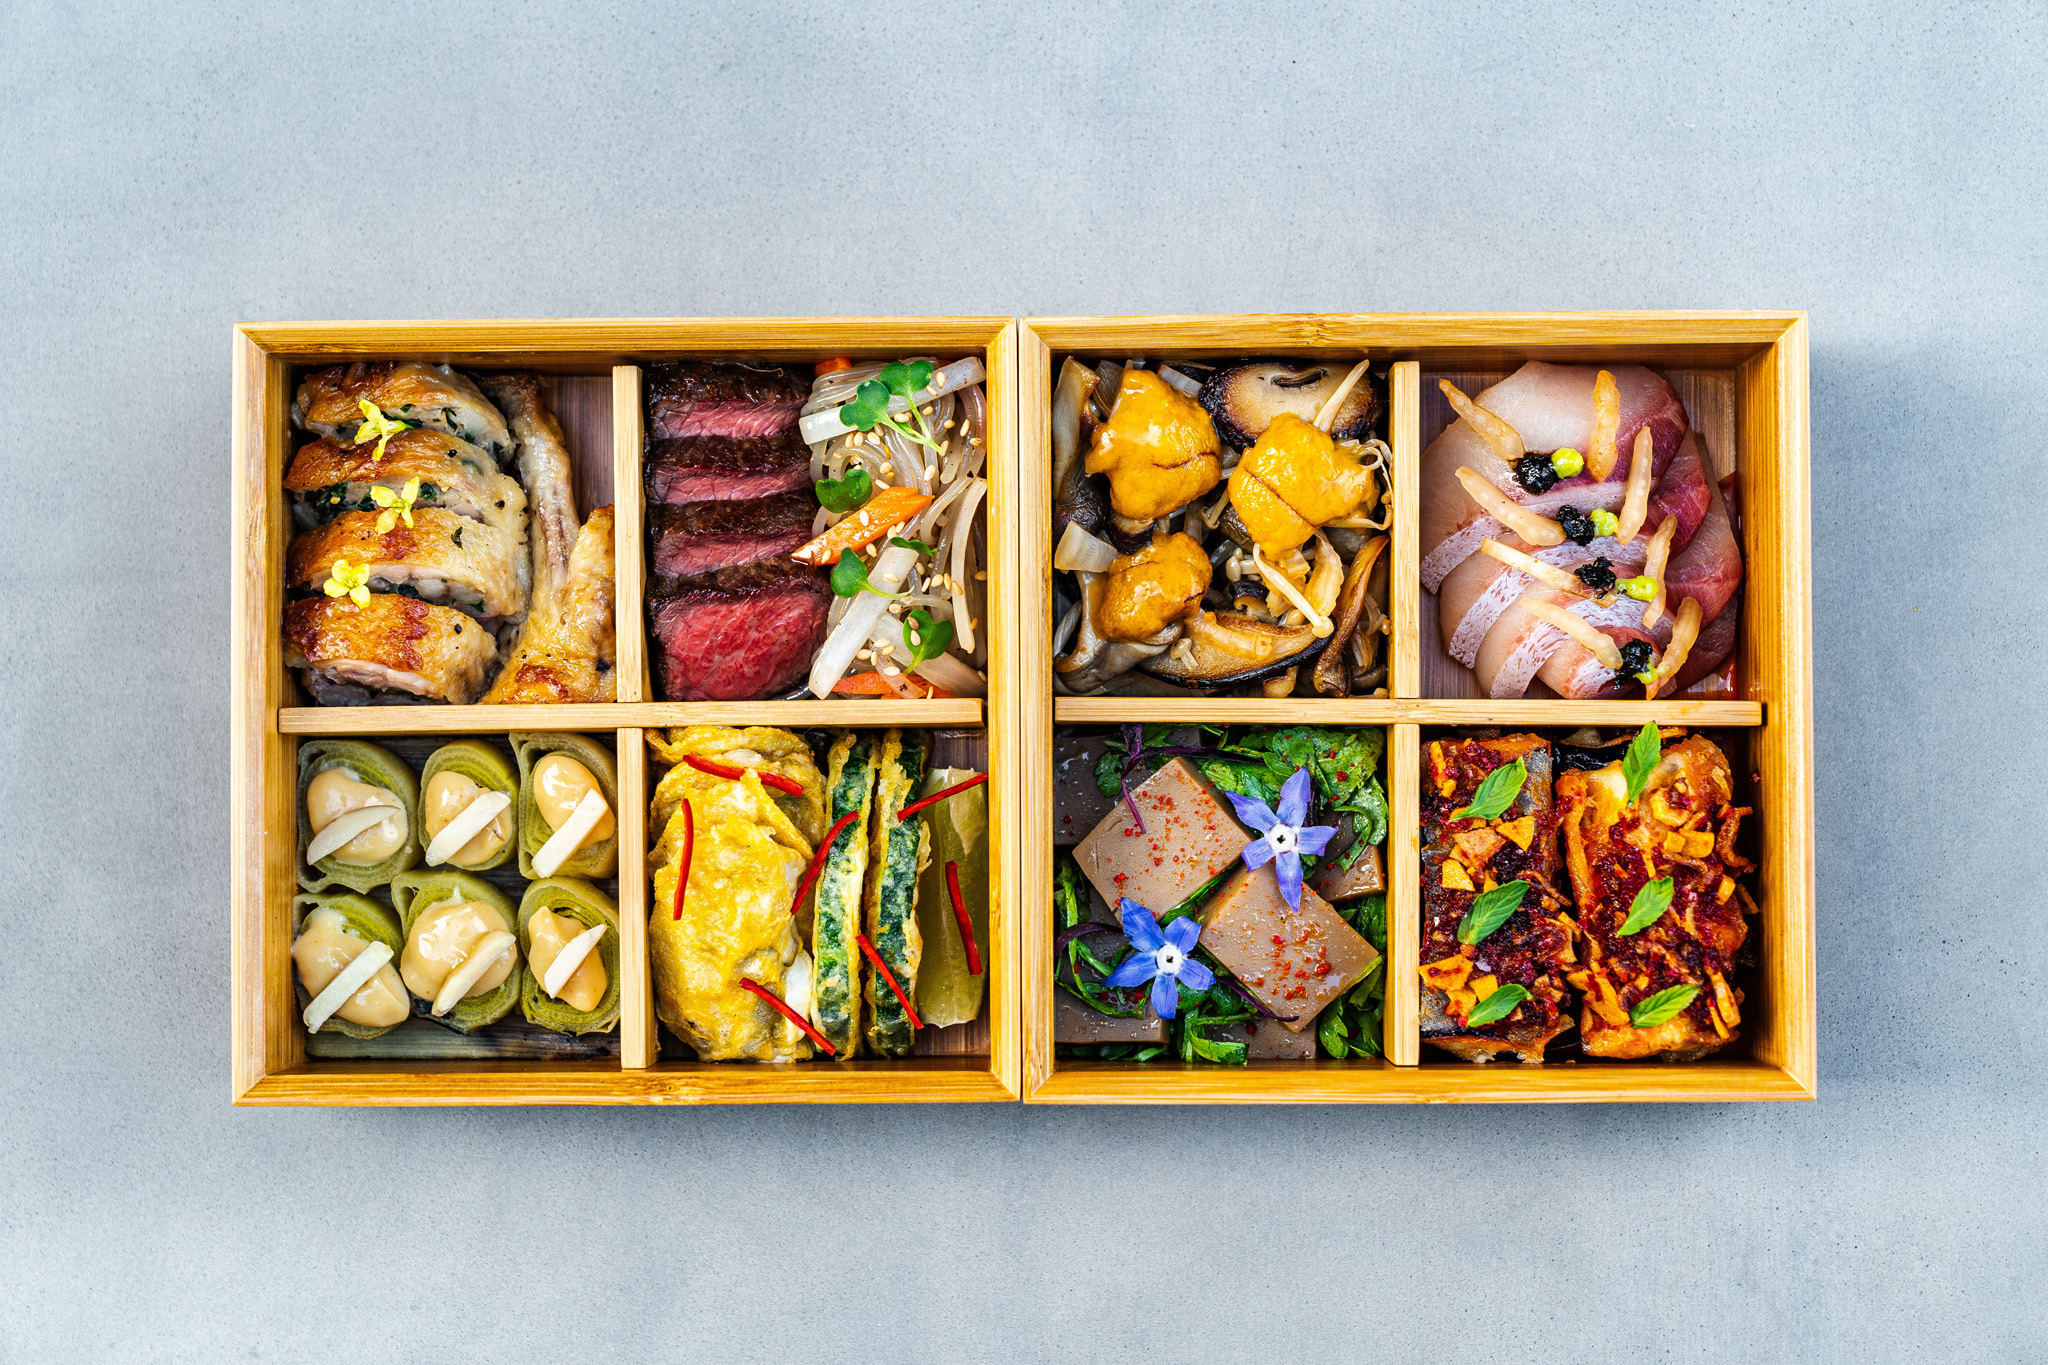 Meet Naemo, a new Korean fine dining pop-up from two NYC restaurant vets